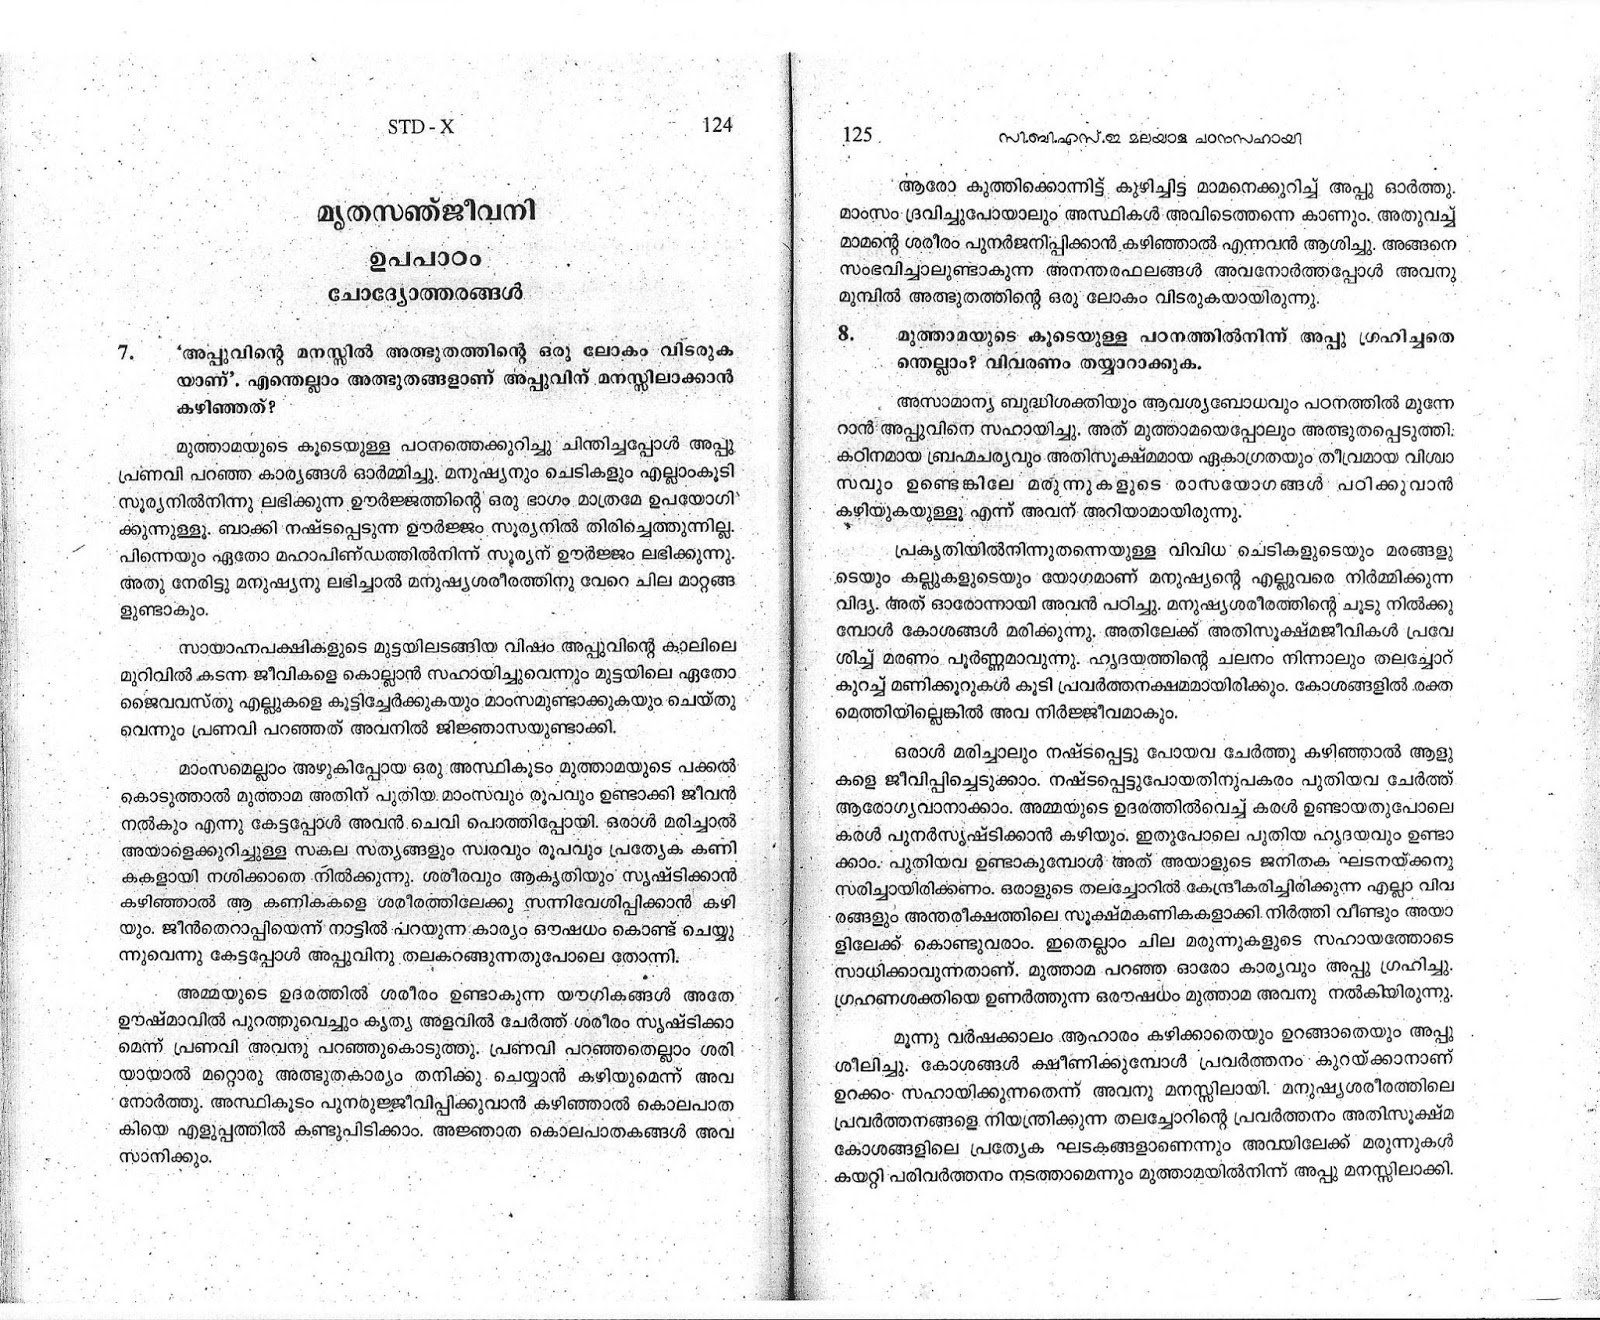 essay in malayalam The malayalam wikipedia (malayalam: മലയാളം വിക്കിപീഡിയ) is the malayalam edition of wikipedia, a free and publicly editable online encyclopedia, and was launched on december 21, 2002 the project is the leading wikipedia among other south east asian language wikipedias in various quality matrices.